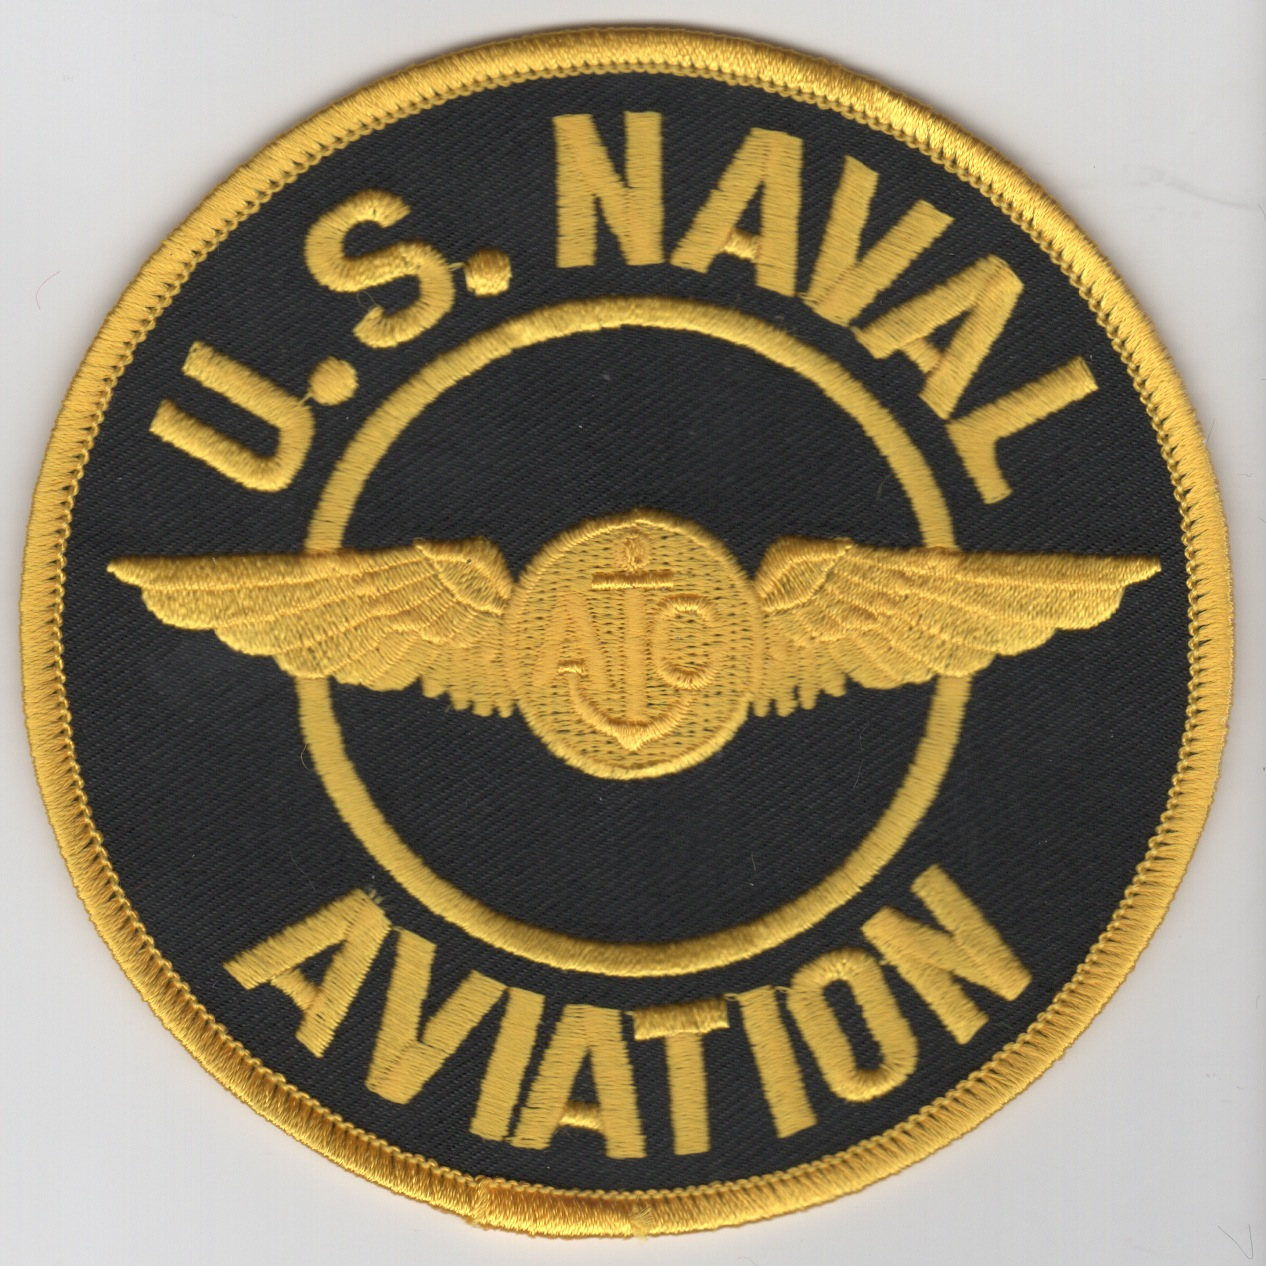 US Naval Aviation - AIRCREW (Med)